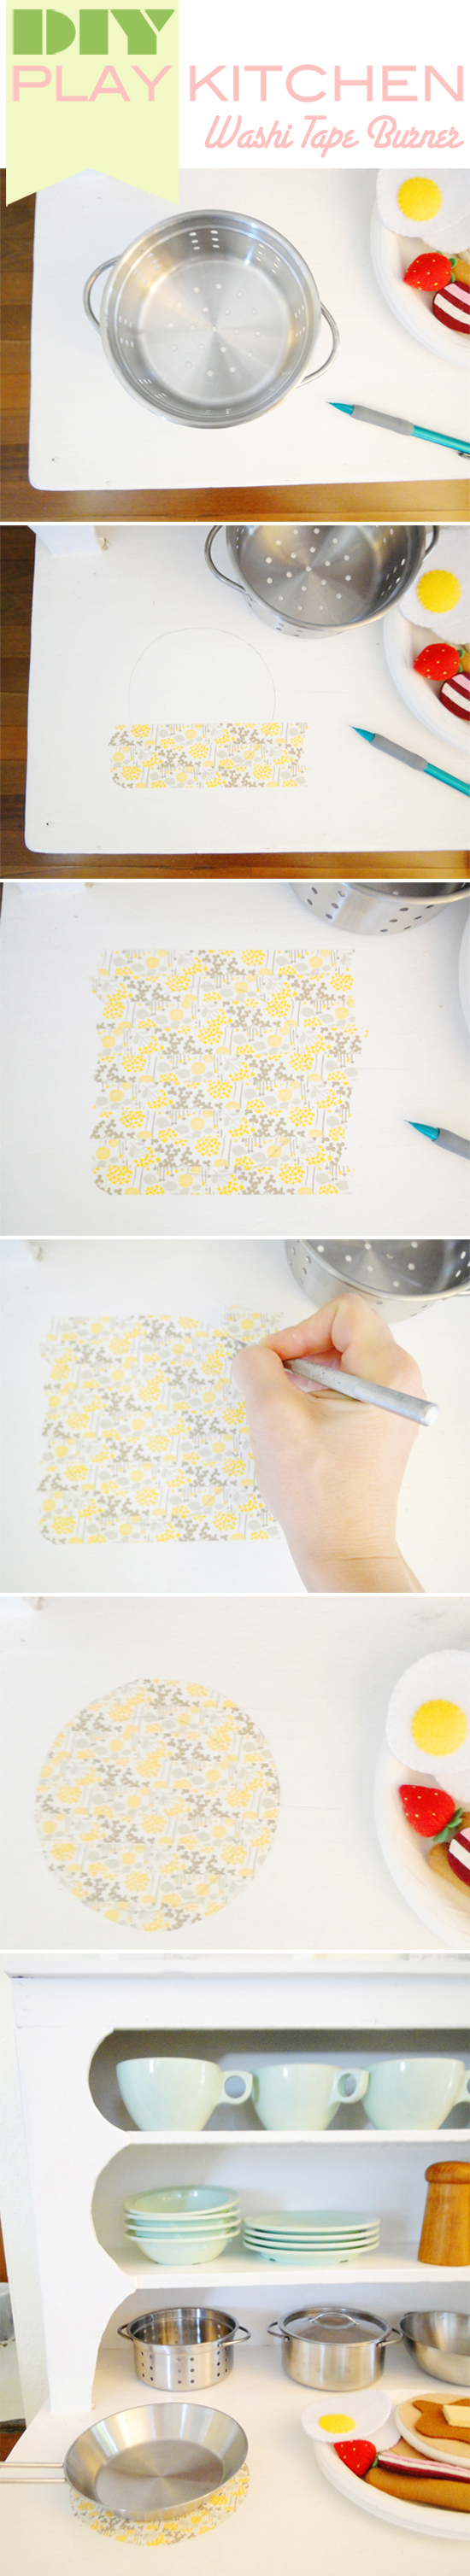 DIY-Play-Kitchen-Washi-Tape-Burner